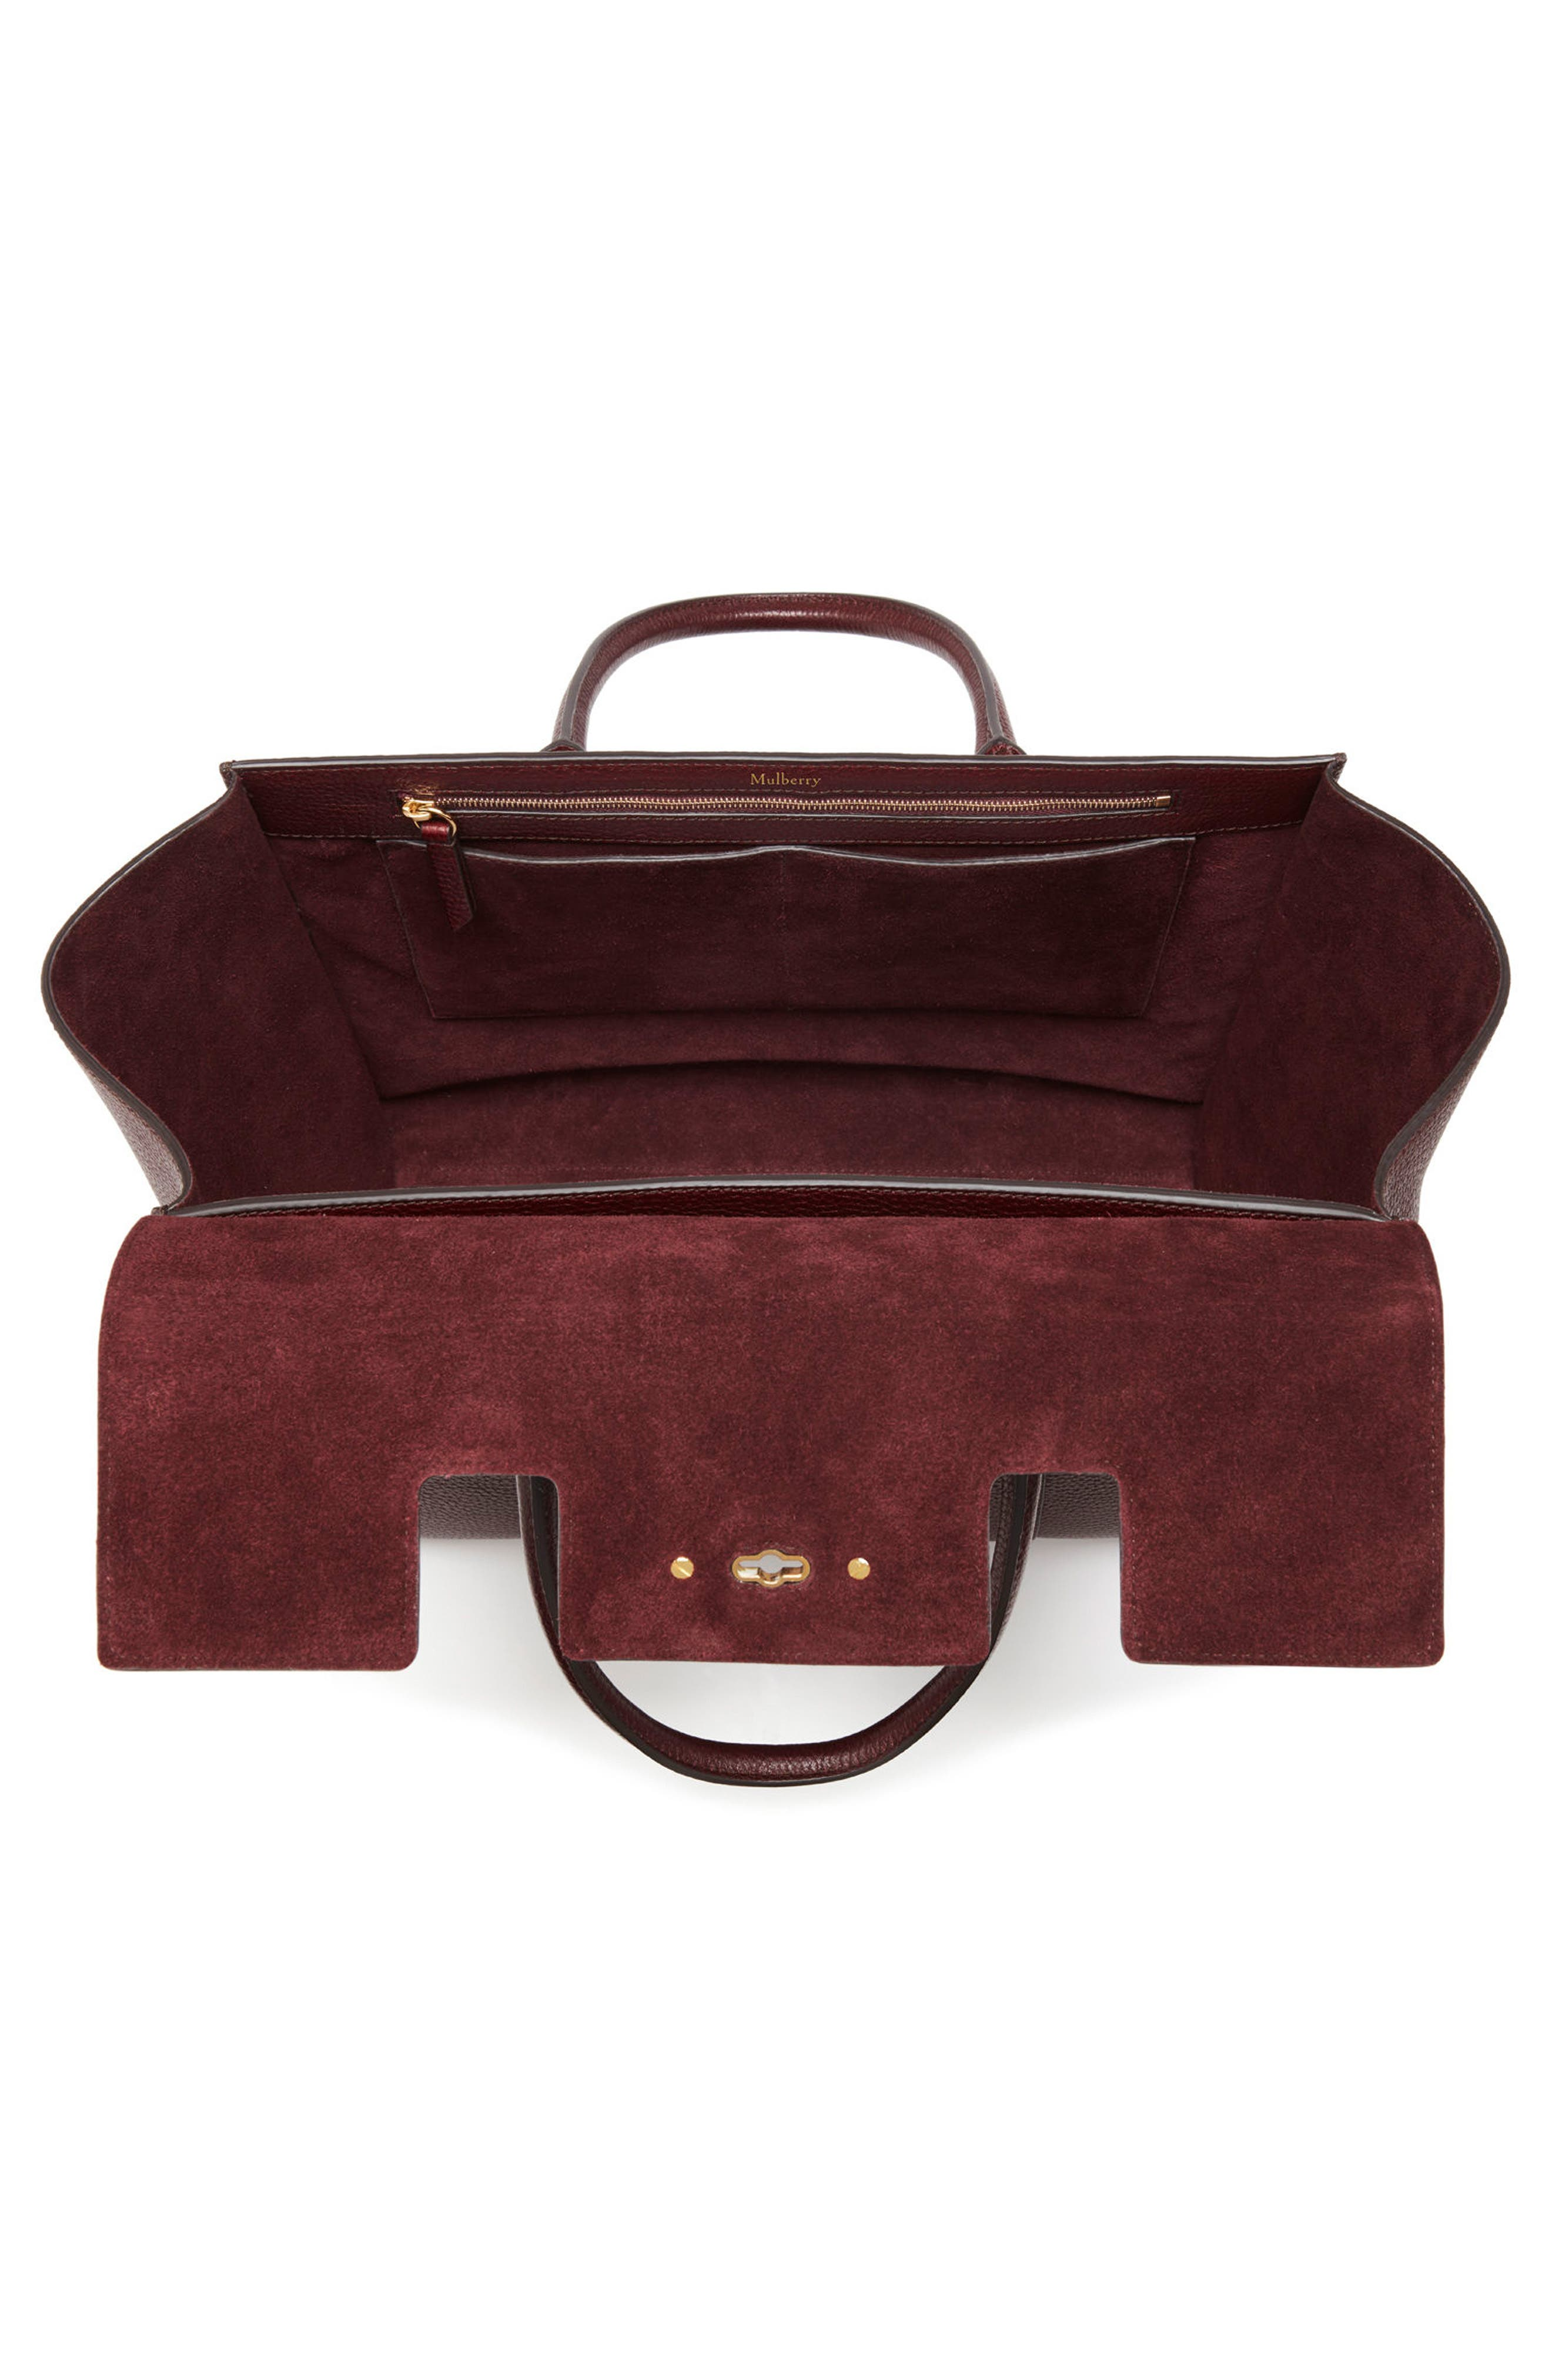 Bayswater Calfskin Leather Satchel,                             Alternate thumbnail 3, color,